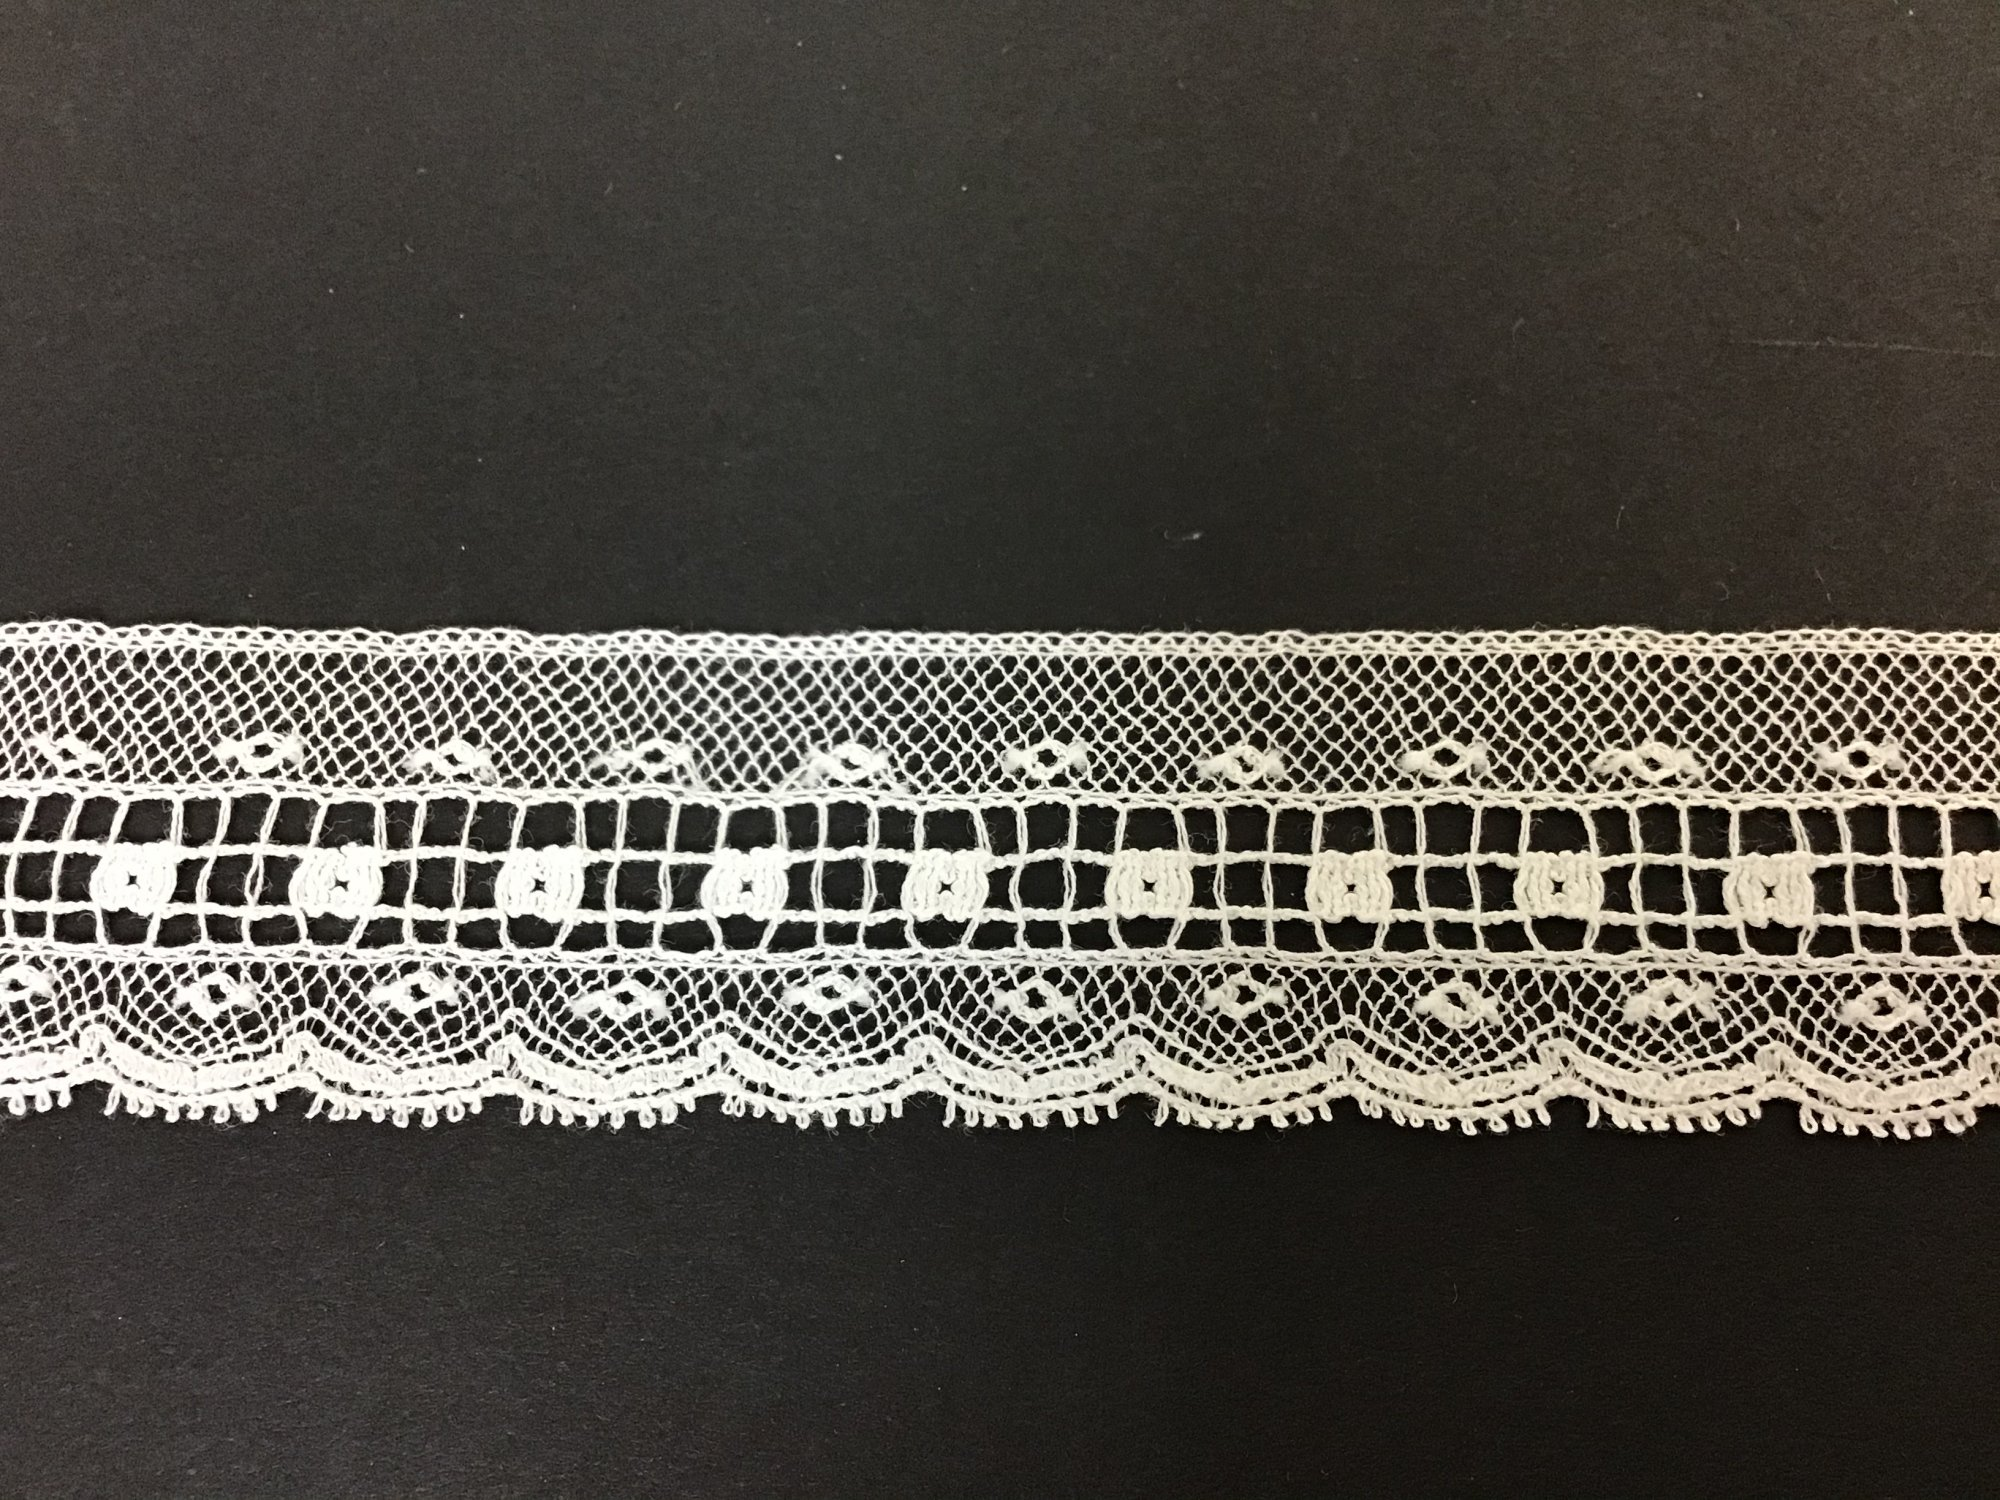 French Maline Lace Edging 1 Inch White 200583-09